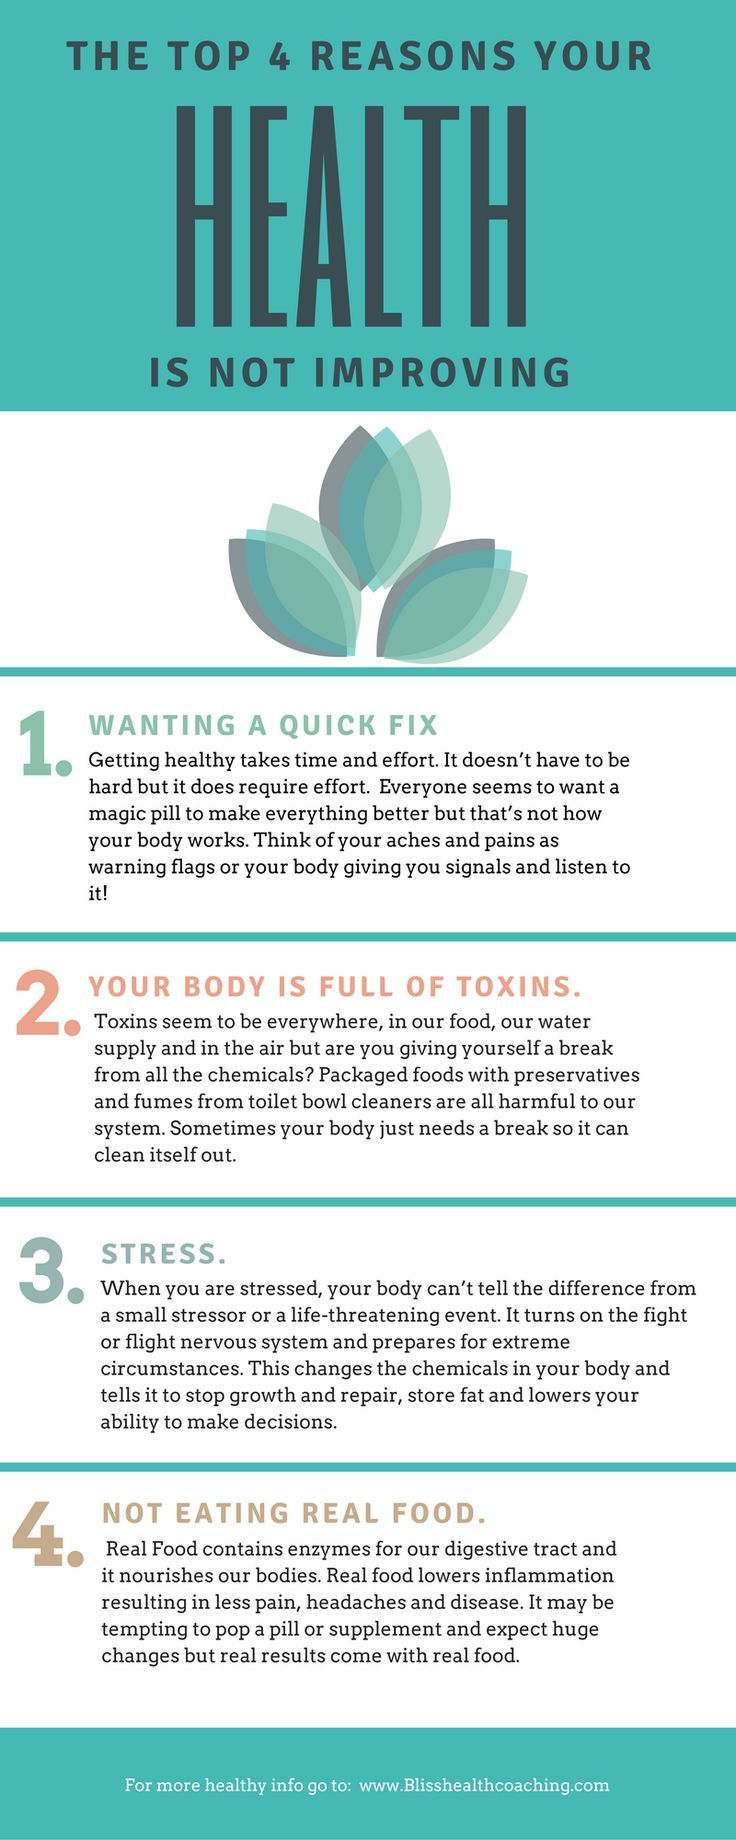 4 Behavior Patterns that Will Negatively Impact Your Health - Infographic